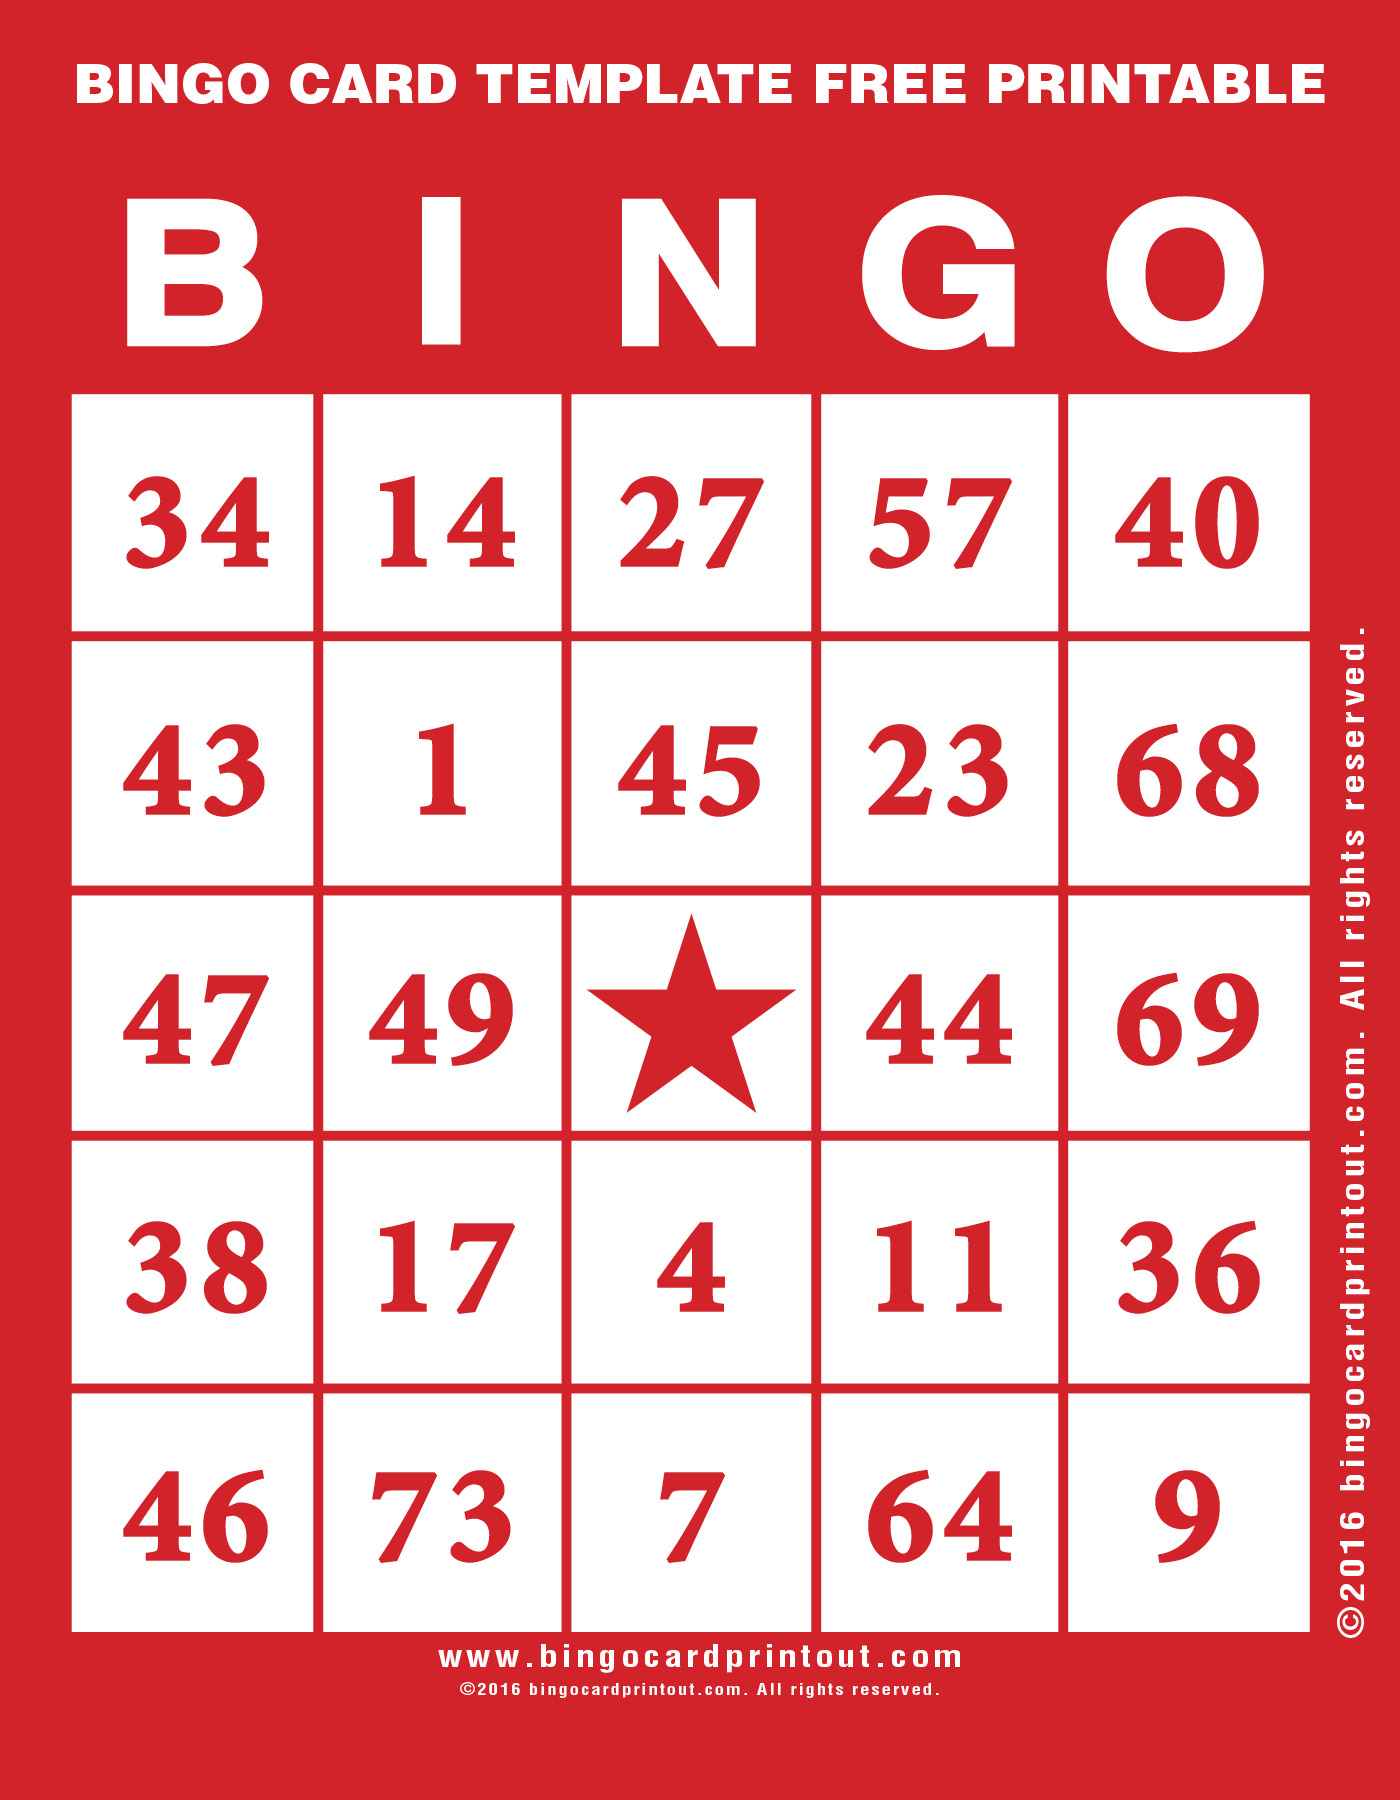 Bingo Card Template Free Printable - Bingocardprintout